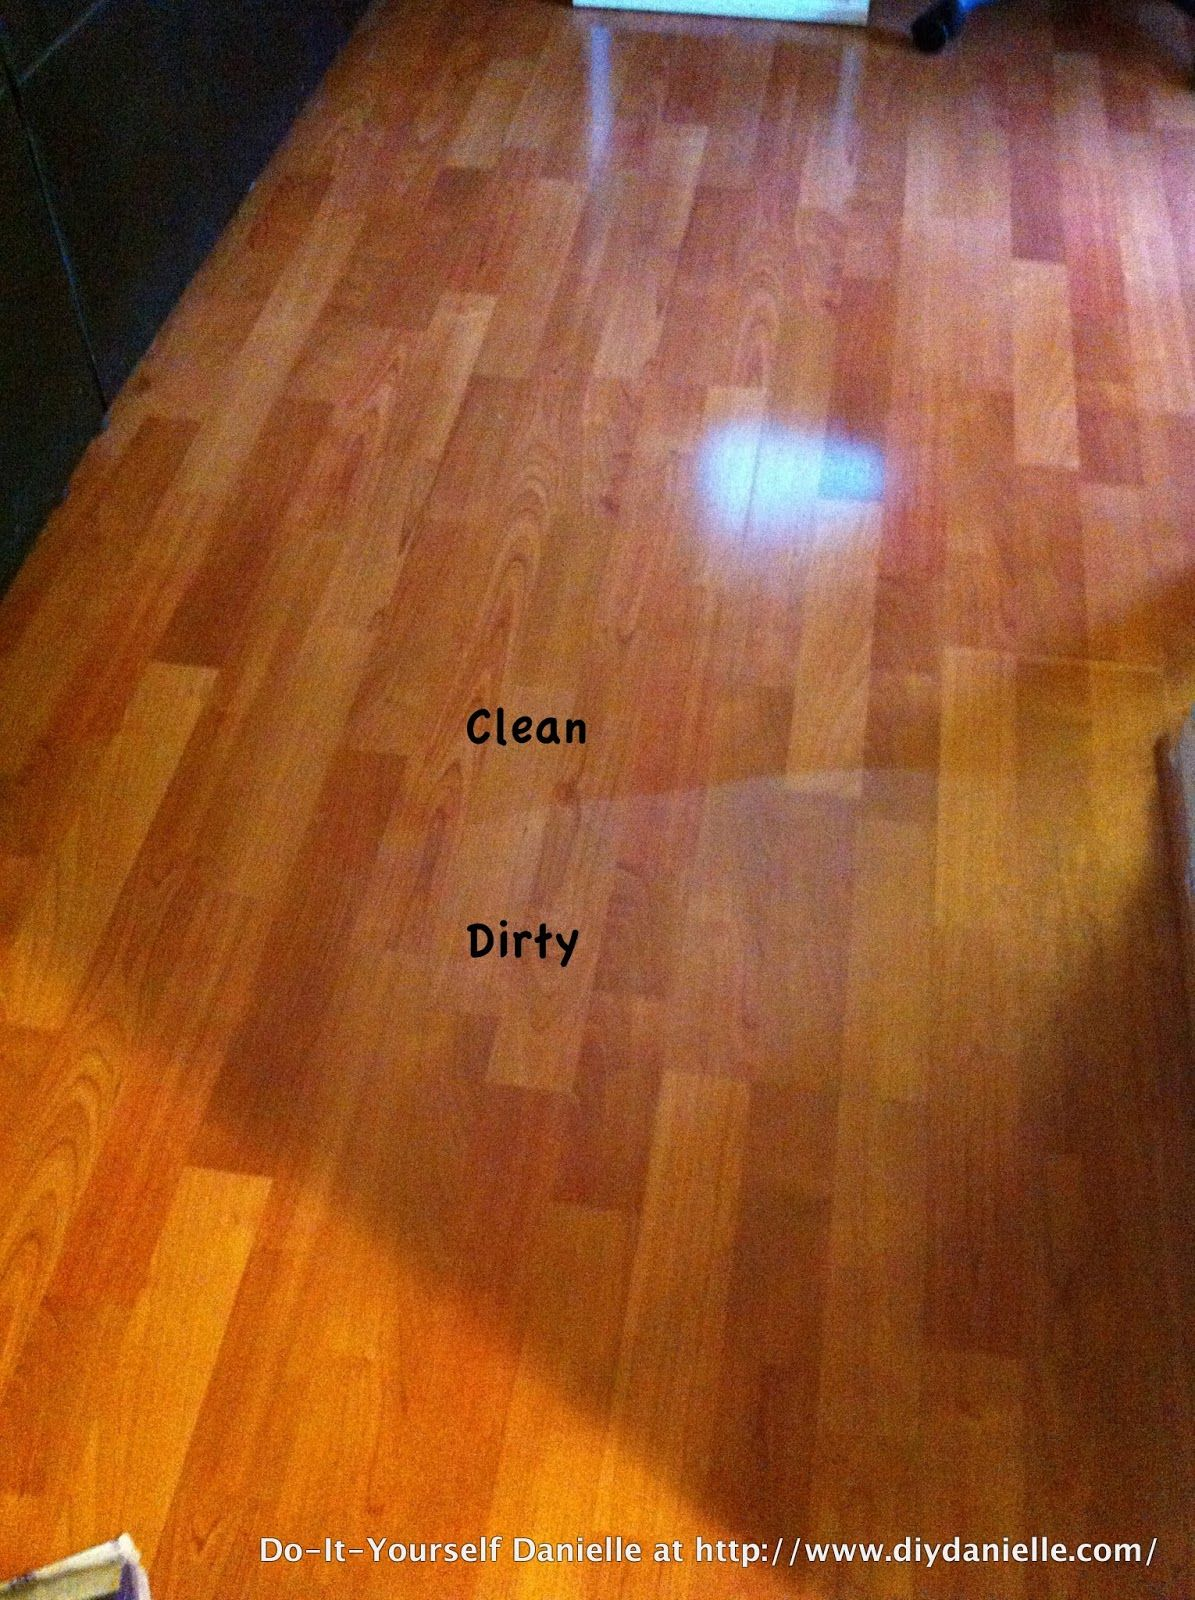 Diy laminate floor spraycleaner rubbing alcohol sprays and vinegar do it yourself danielle diy laminate floor spraycleaner 1 cup vinegar rubbing alcohol and water couple squirts dawn dish washing or 1 cup vin plus gal solutioingenieria Images